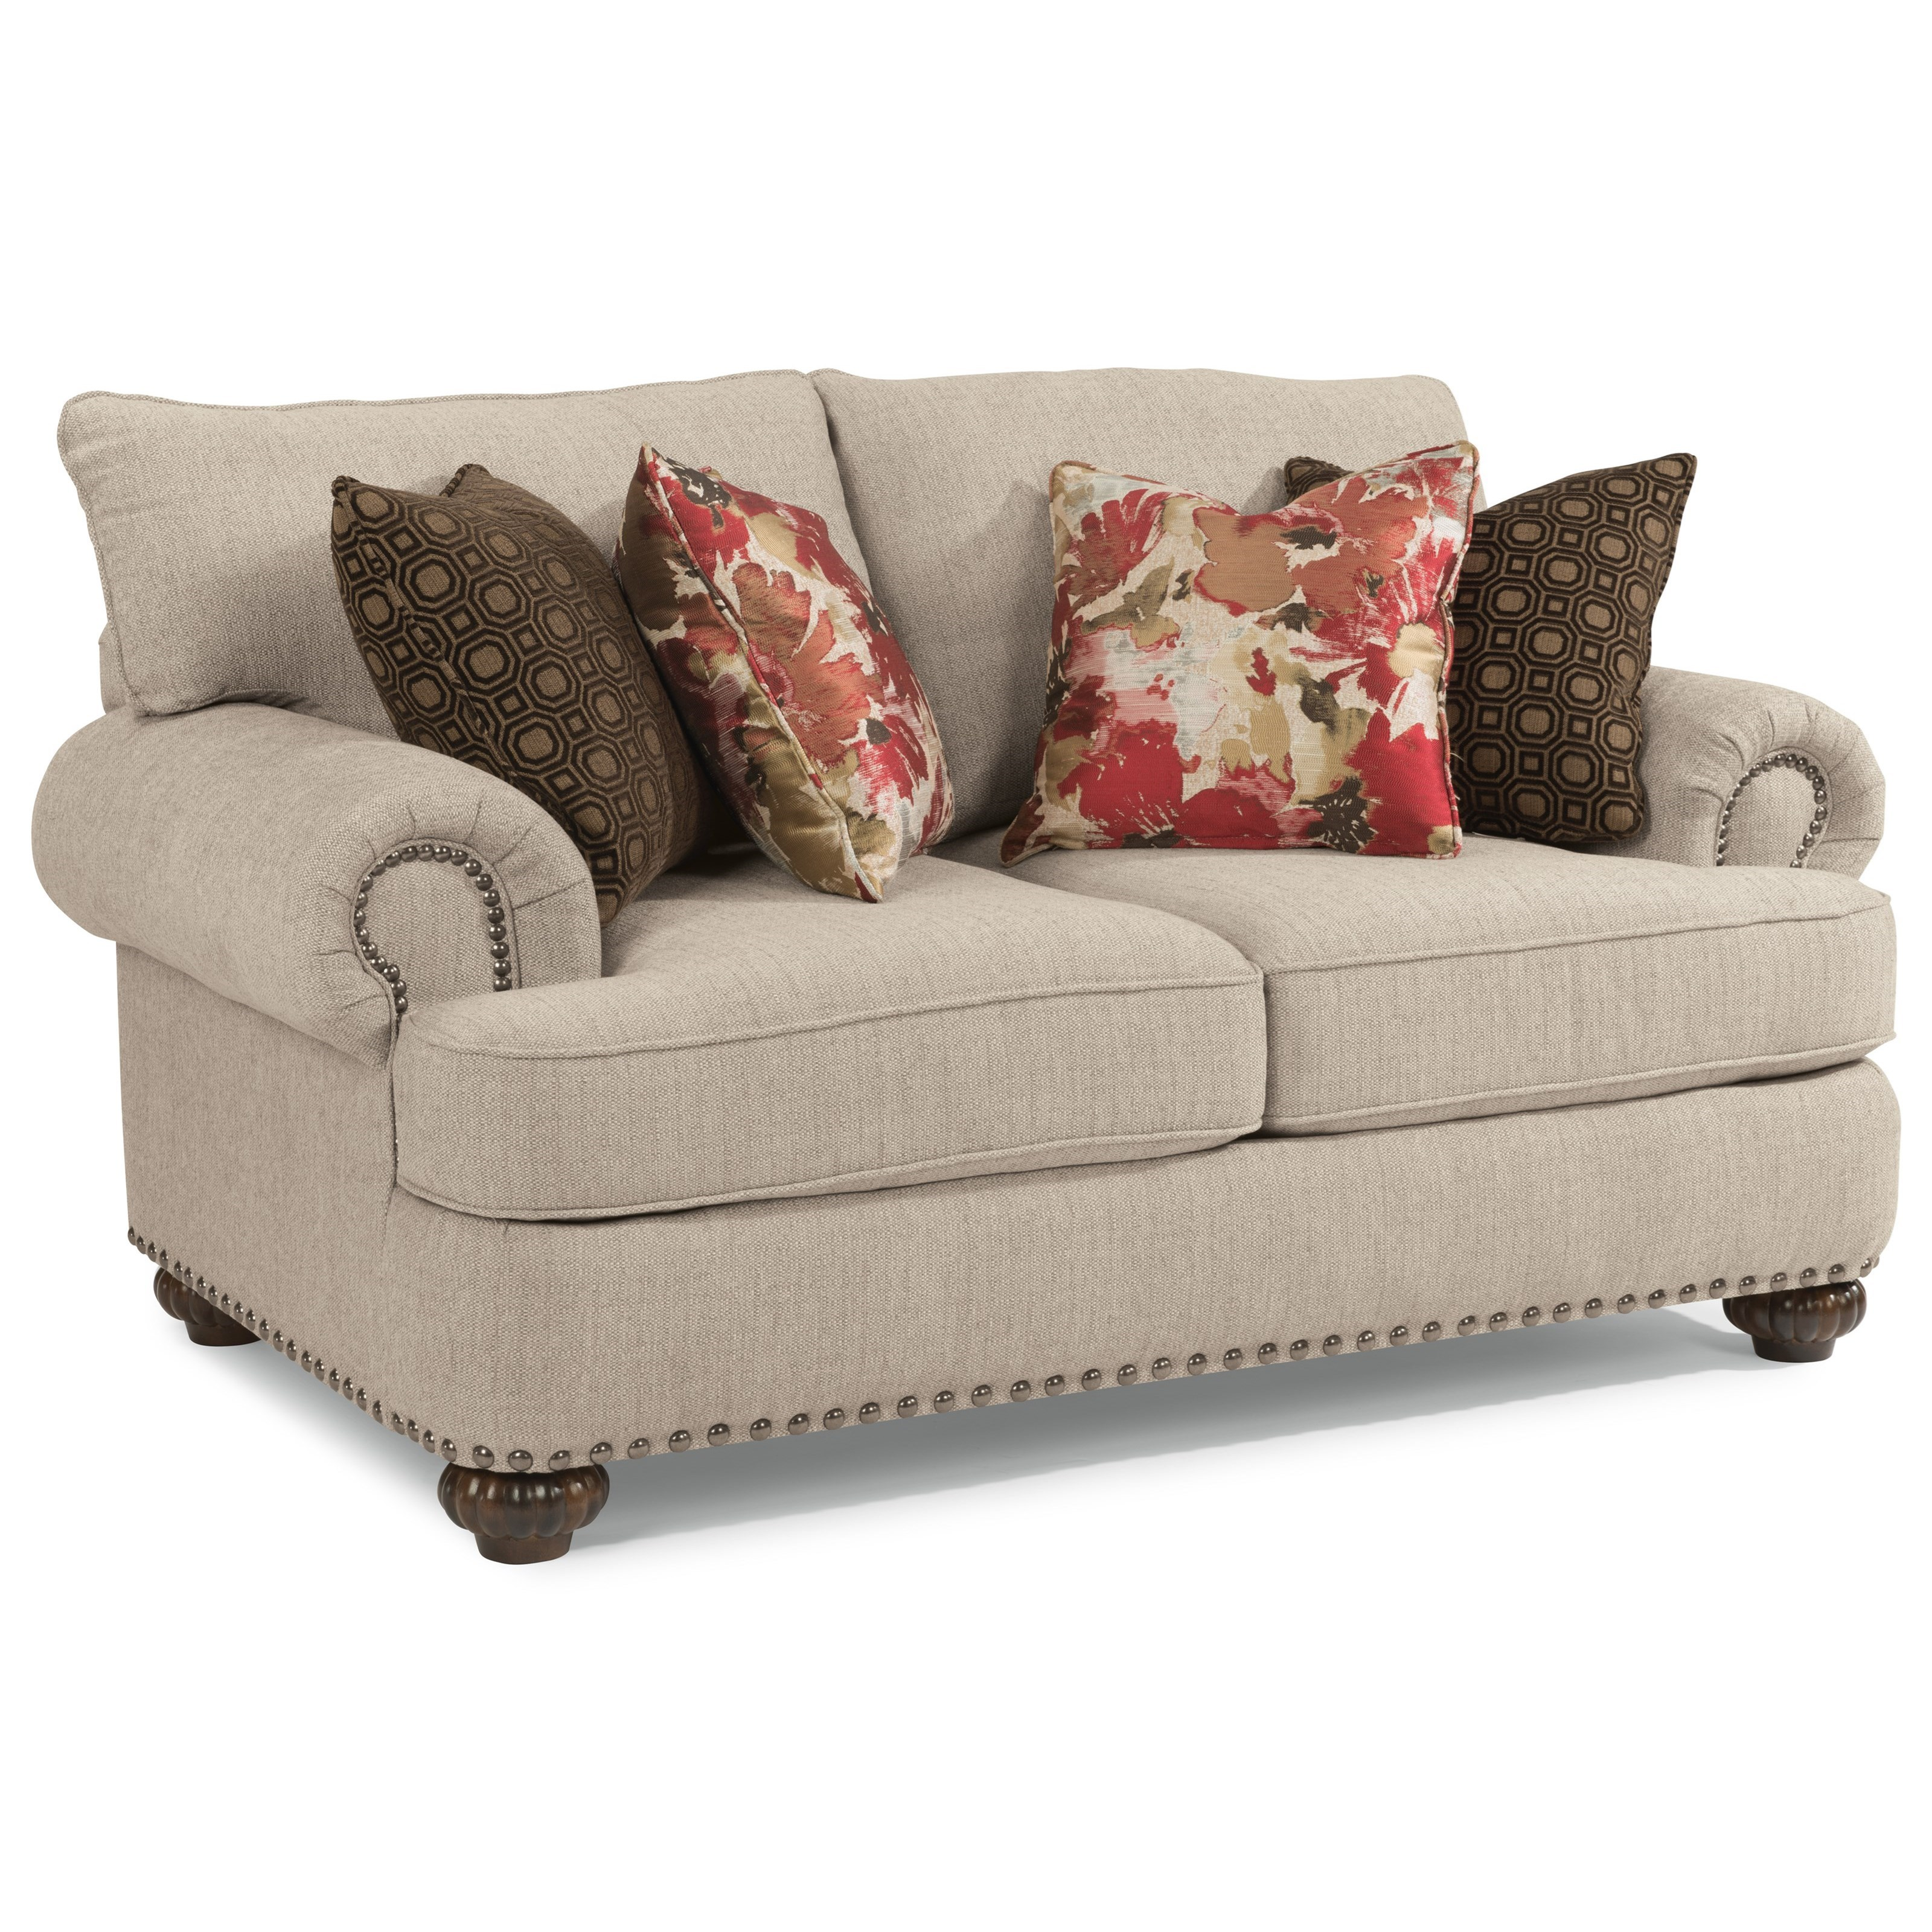 Patterson  Loveseat by Flexsteel at Jordan's Home Furnishings